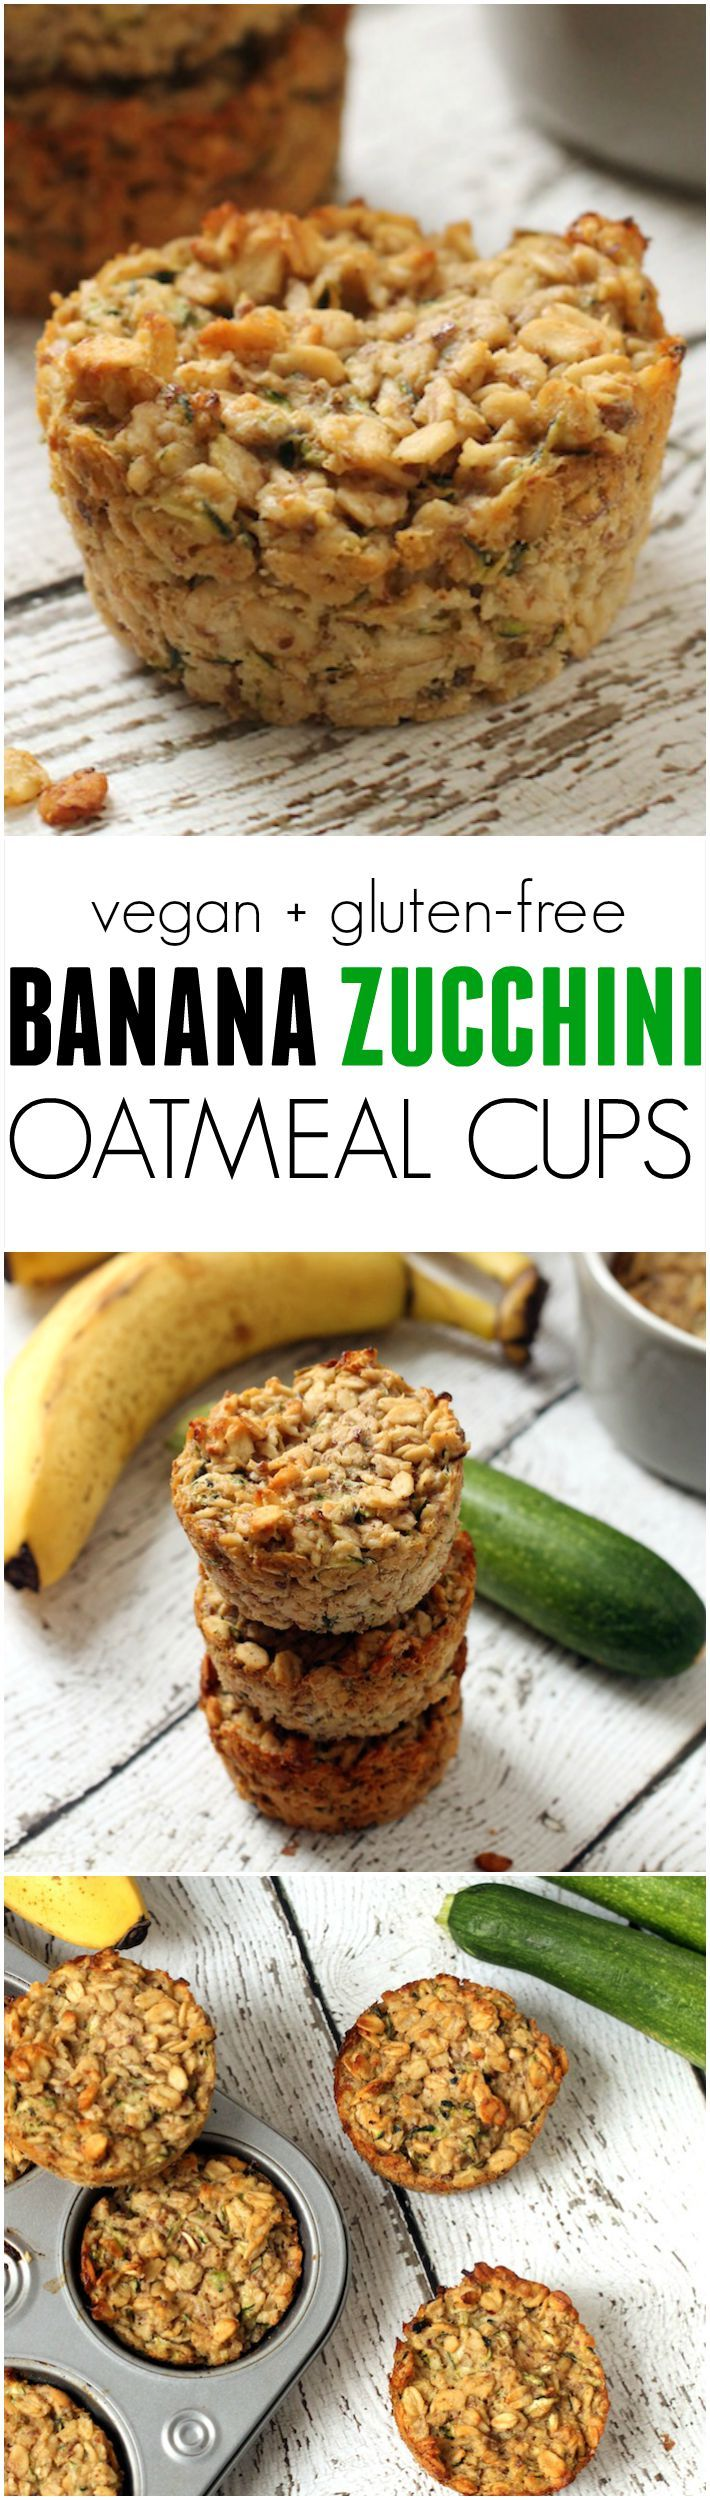 Banana Zucchini Oatmeal Cups --a portable, easy, healthy, breakfast on-the-go! Vegan, gluten-free, kid-friendly, no refined sugar.